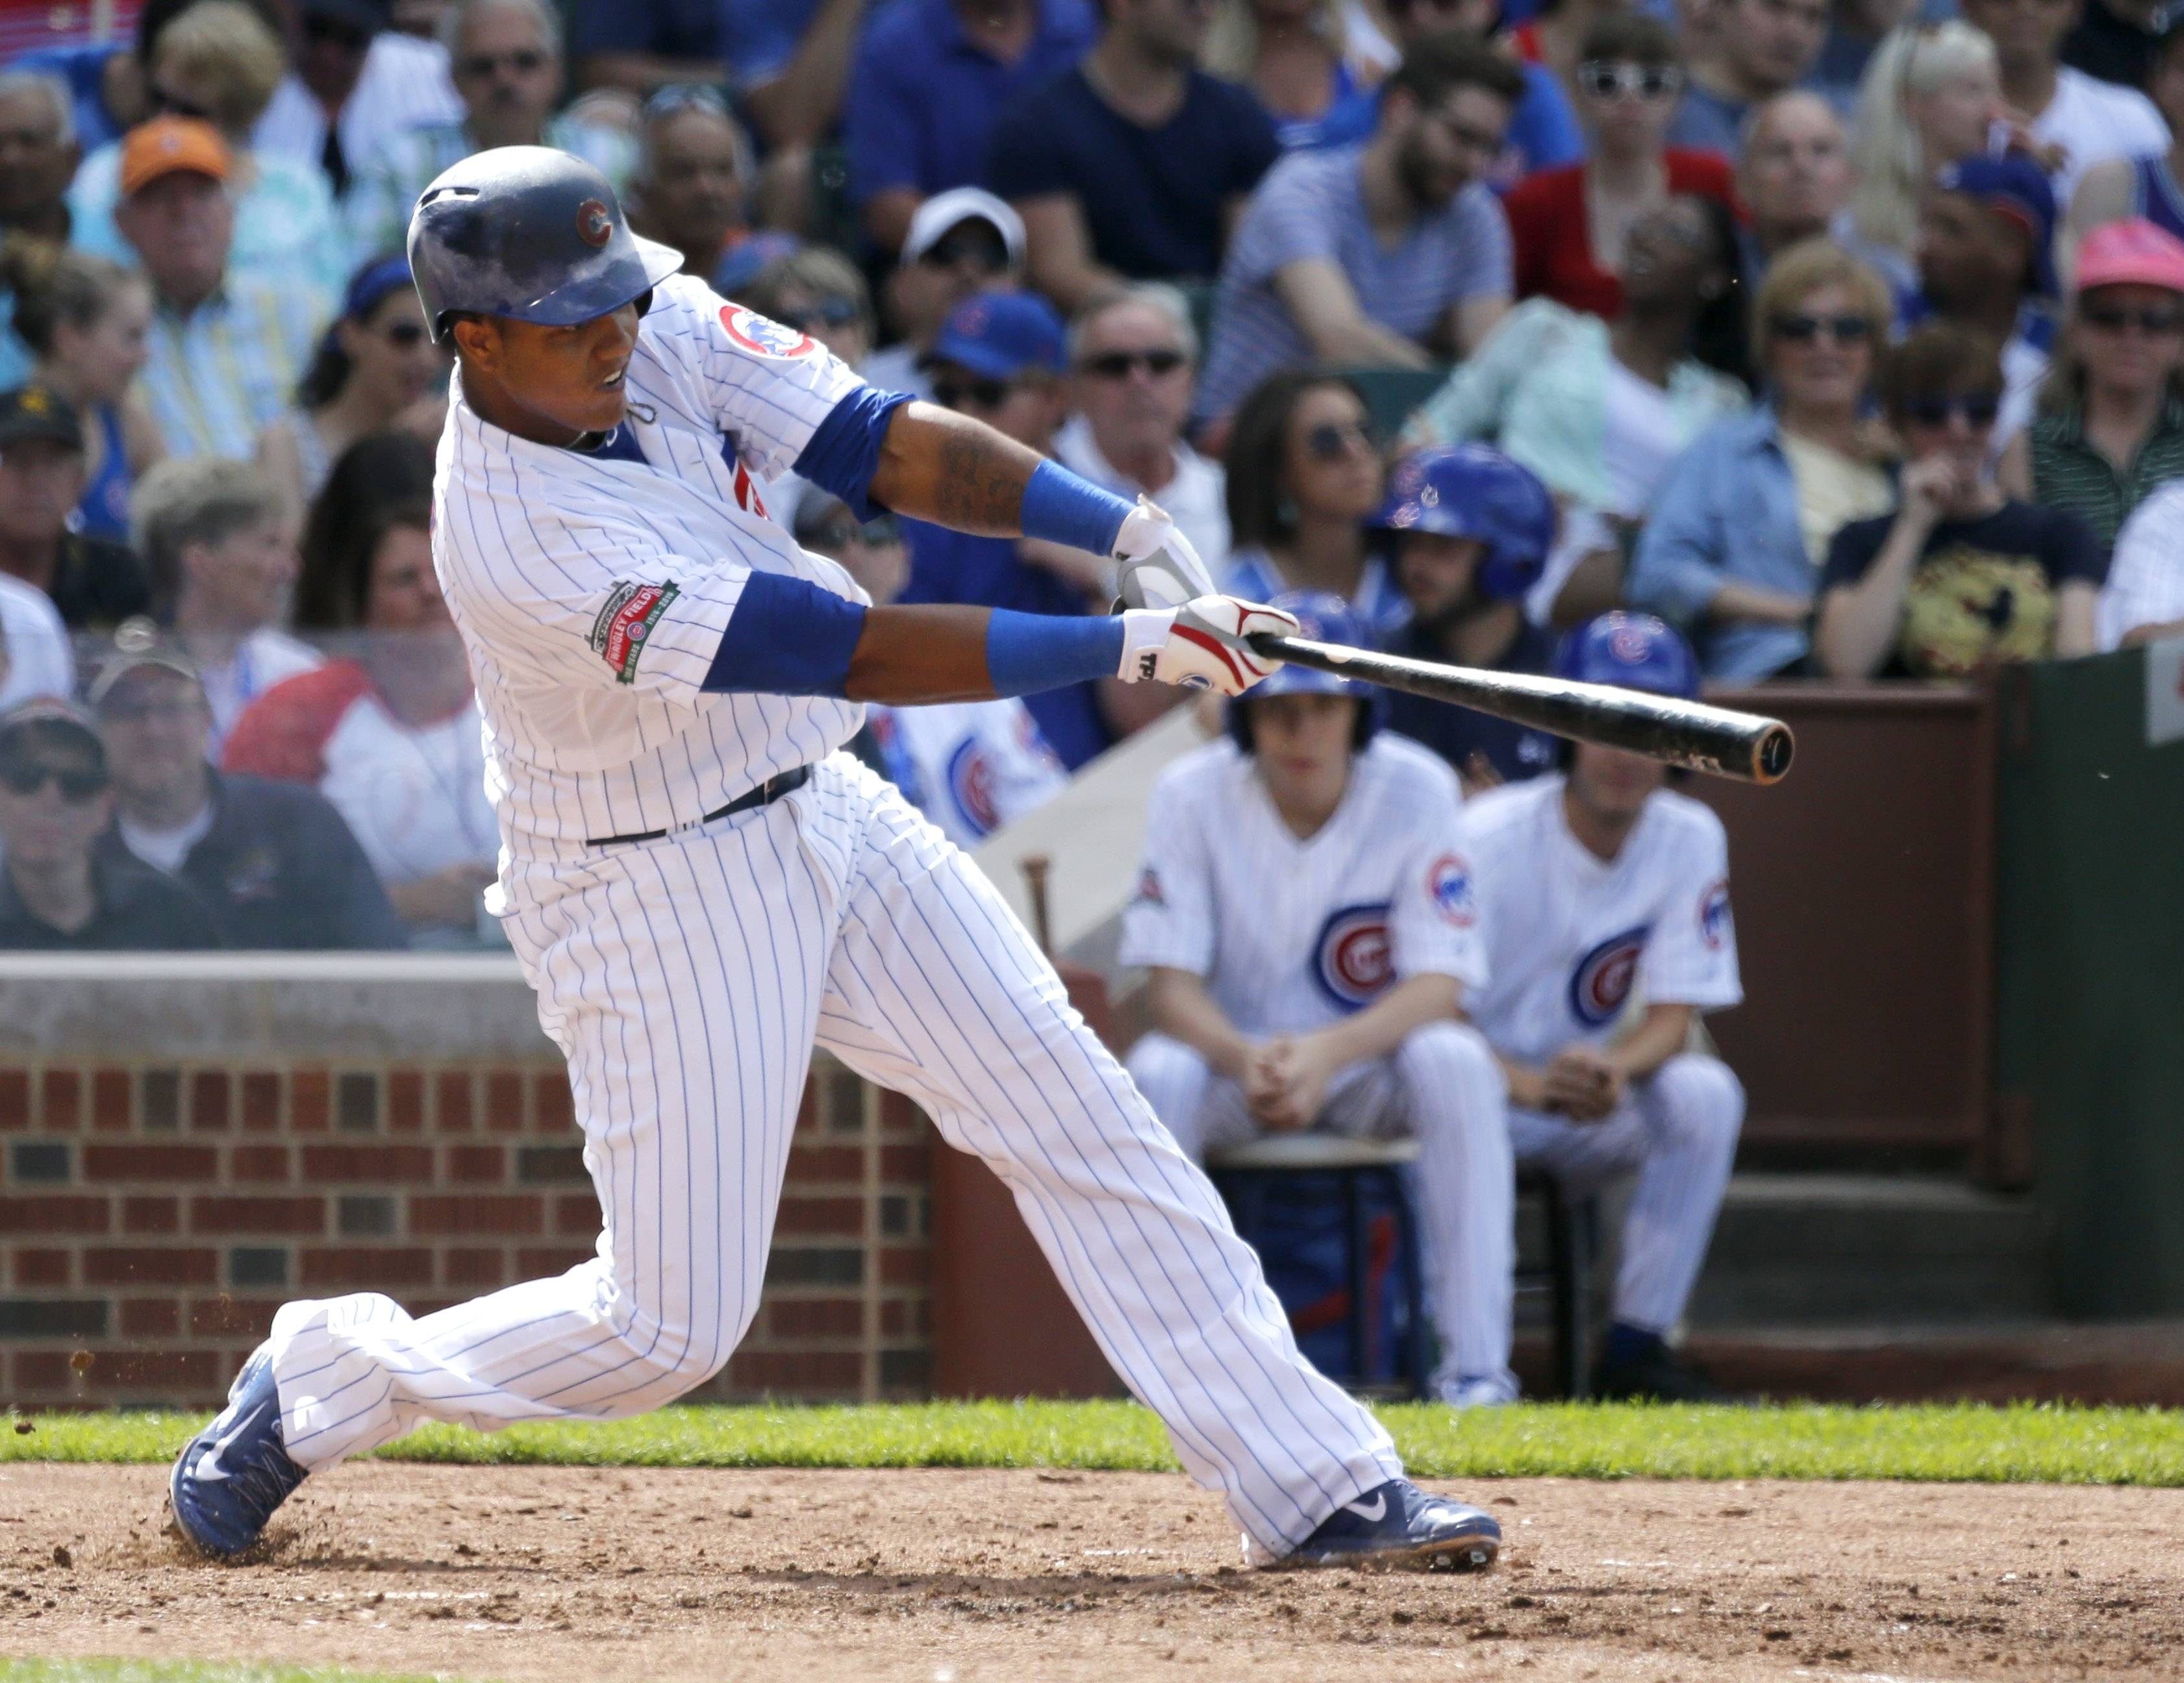 Starlin Castro hits a 3-run home run off Pirates starter Charlie Morton during the third inning Friday at Wrigley Field. It was Castro's 11th homer in the Cubs' 71st game, eclipsing his total of 10 in all of 2013.